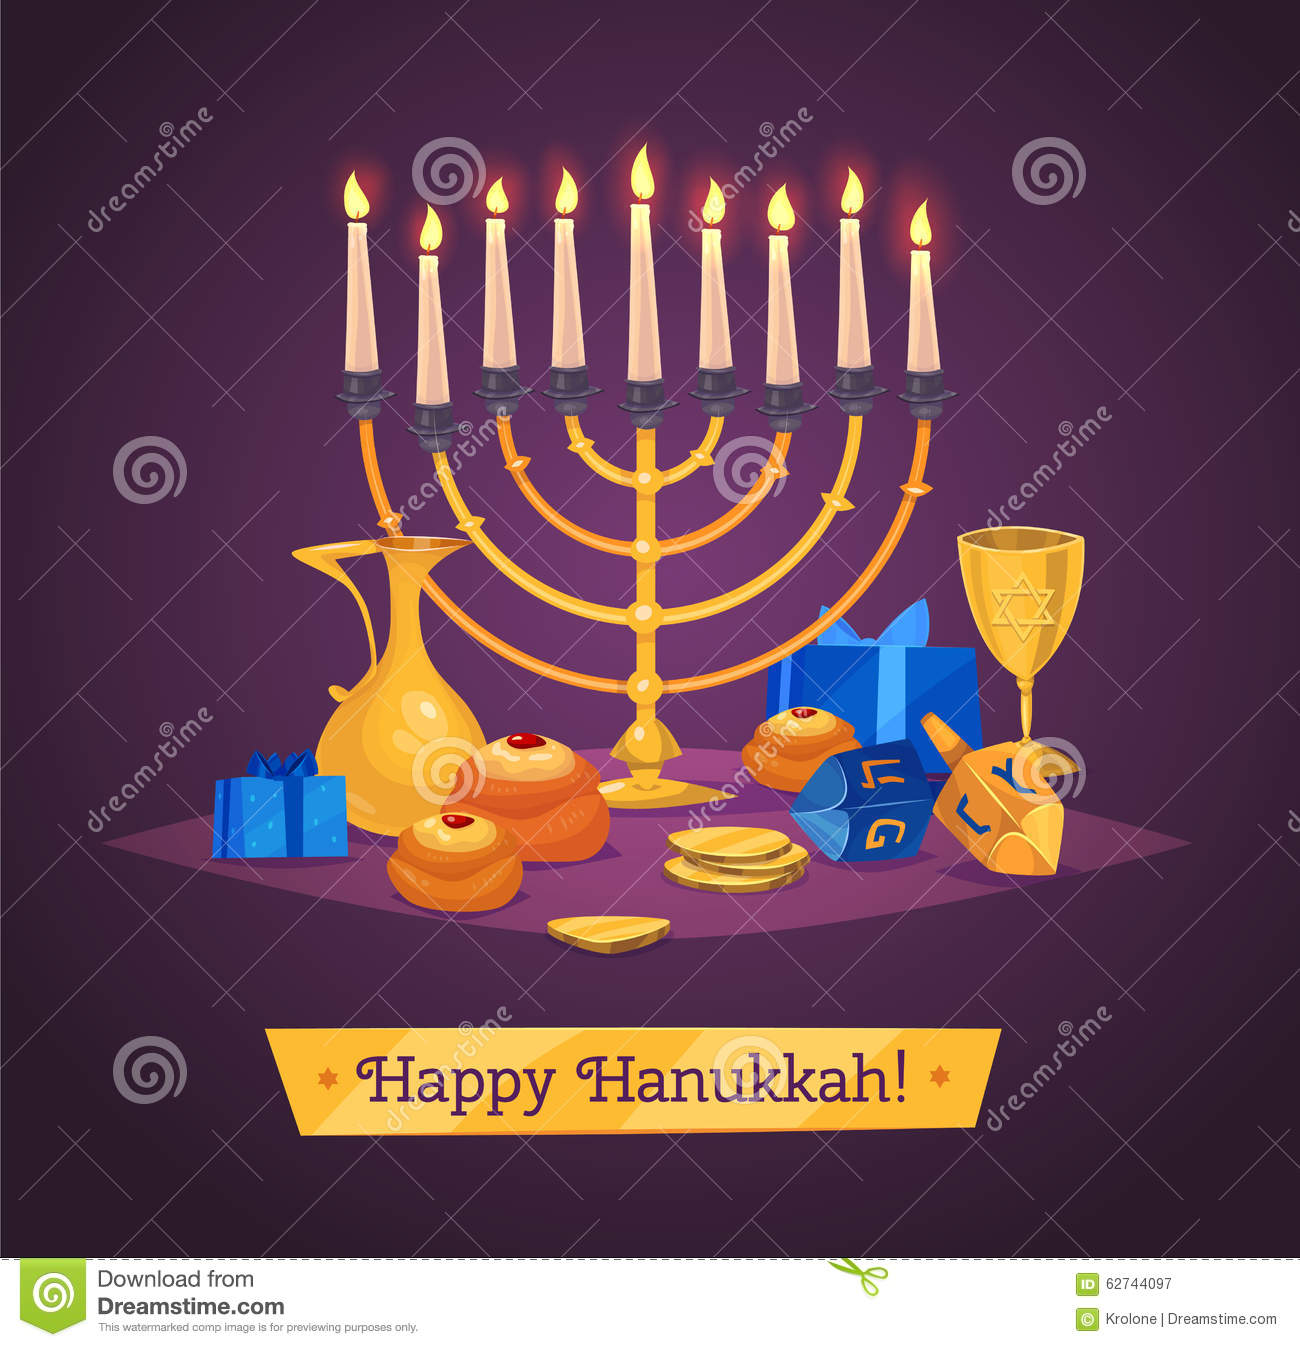 a description of the holiday of chanukah celebrated world wide by the jewish people Purim, celebrated on the 14th of adar, is the most fun-filled, action-packed day of the jewish yearit commemorates our nation's miraculous salvation.